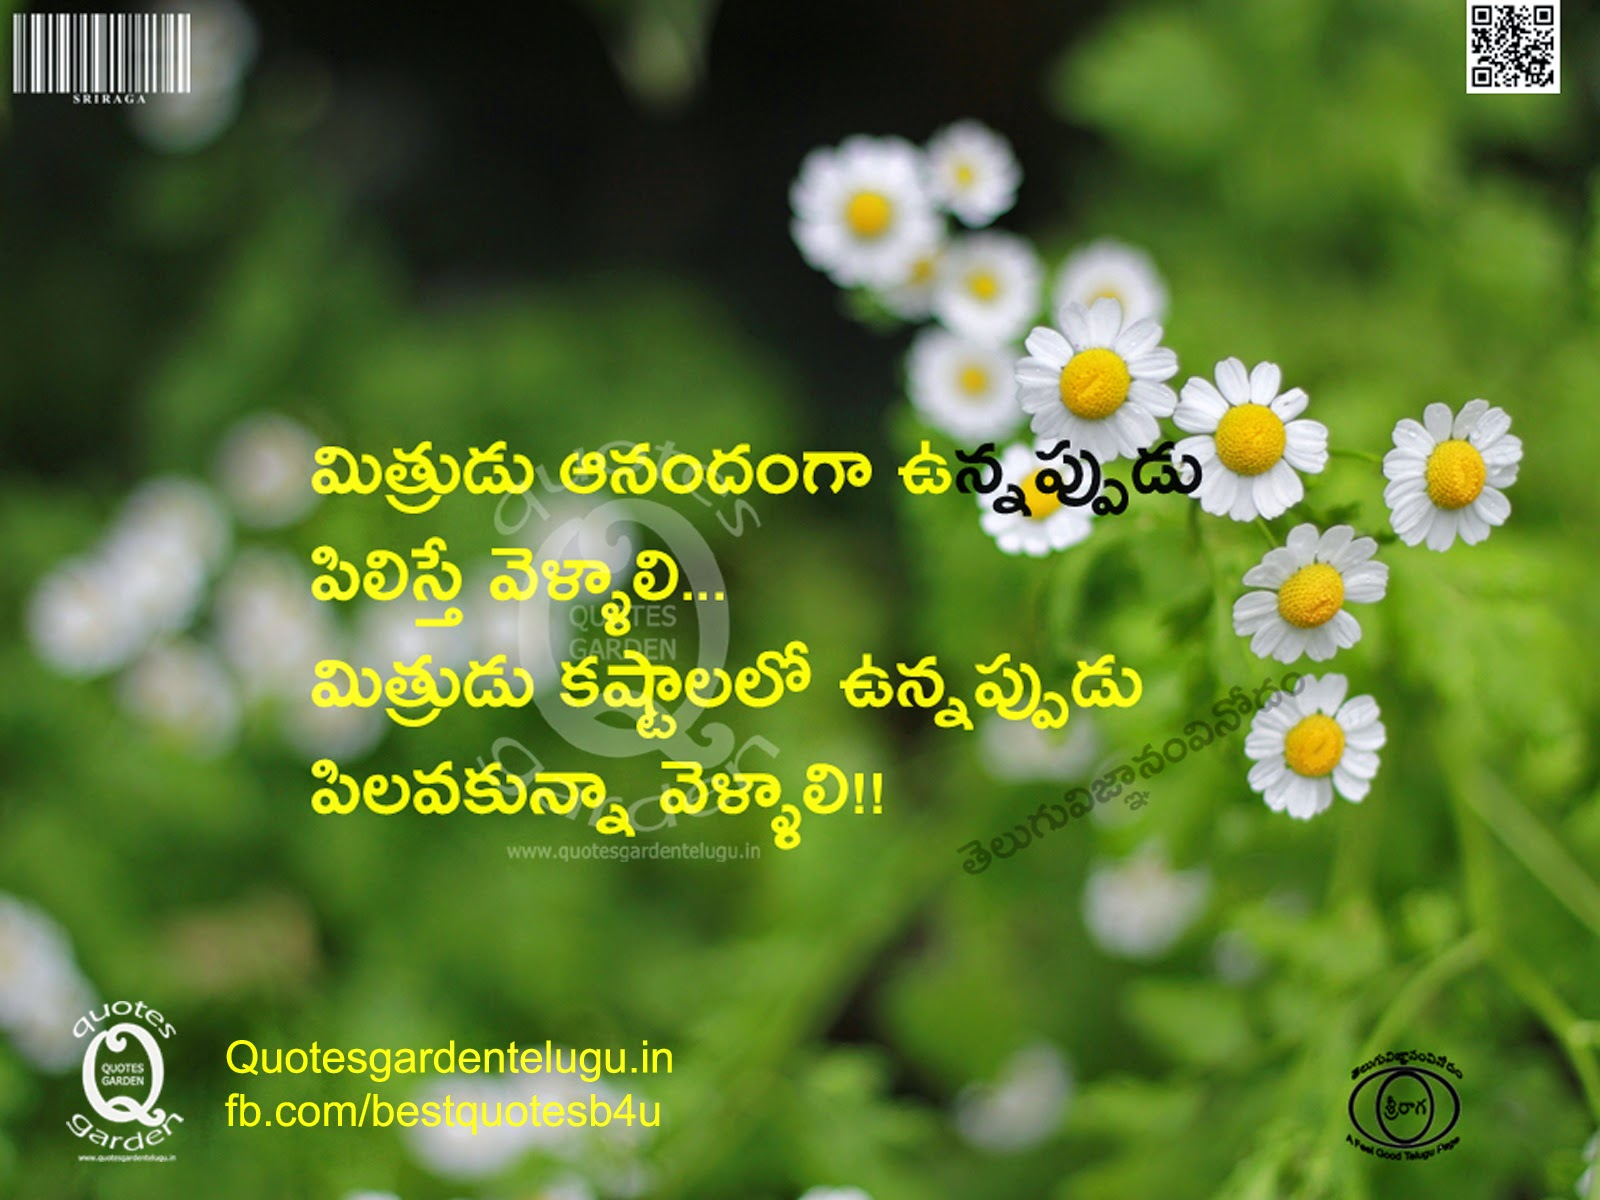 Best Telugu friendship quotes with nice wallpapers and beautiful images